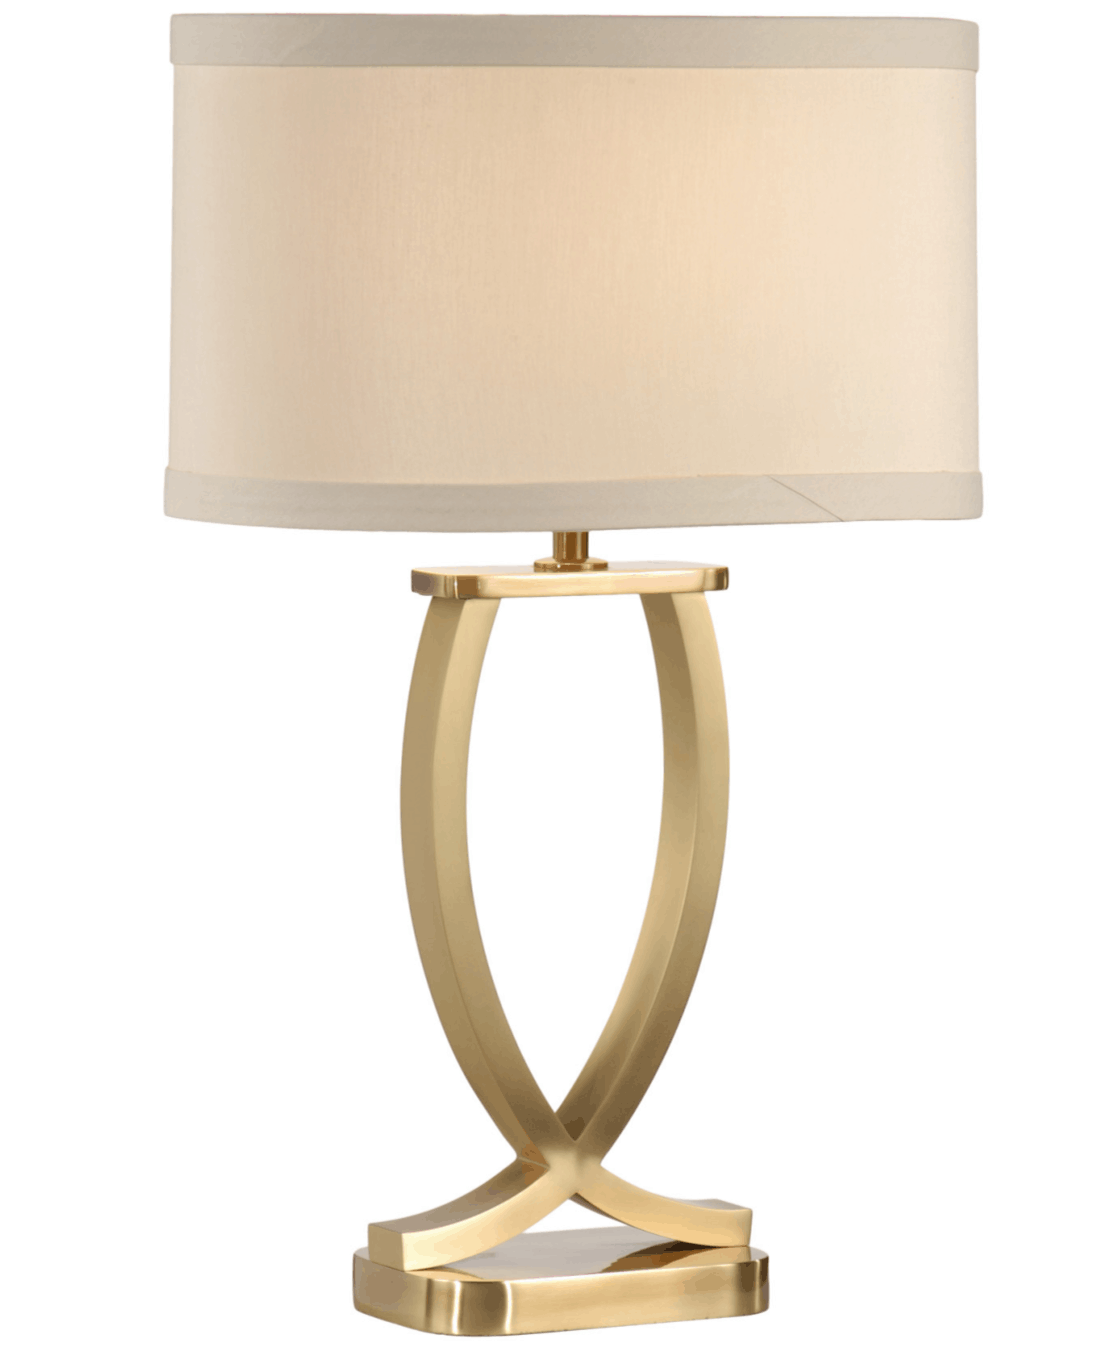 Arches Br Contemporary Lamp By Wildwood Lamps 26